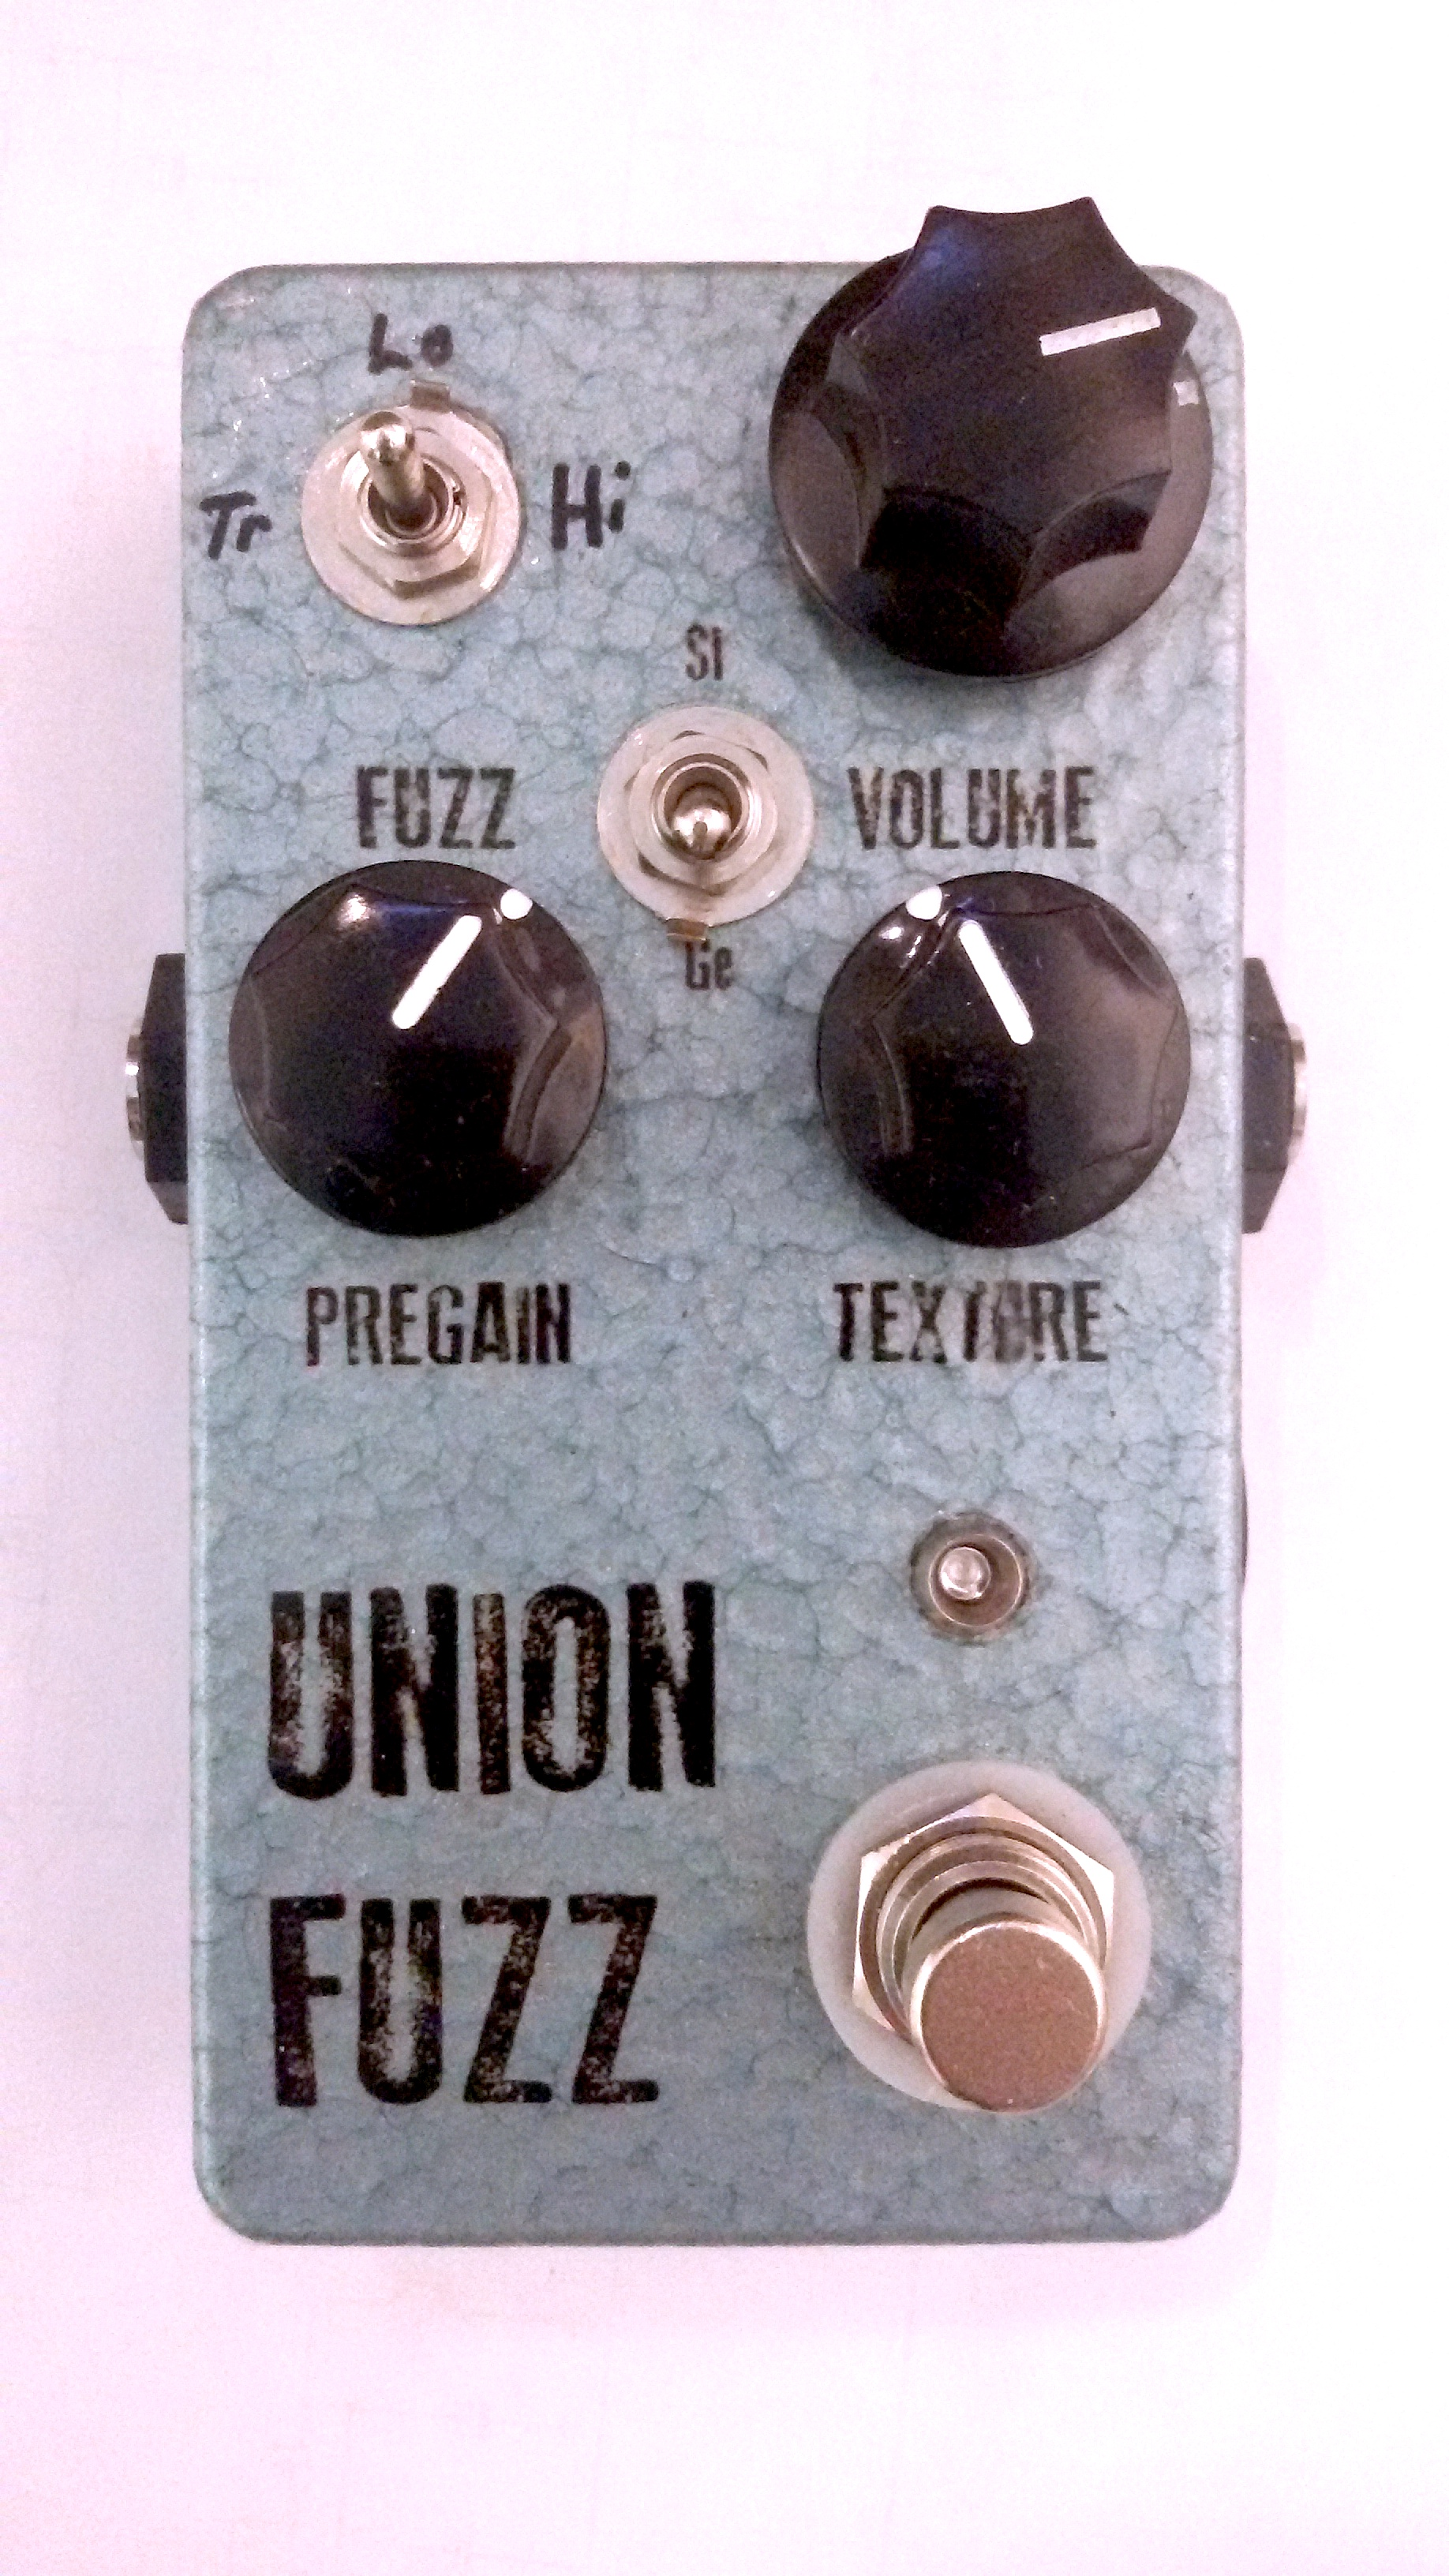 Jdm Pedals Union Fuzz Switchable Germanium Silicon Pedal 3 Way Switch Operation Innovative Voicing And We Have Moved It Into A Slightly Larger Enclosure 125b To Make Battery More Easily Possible